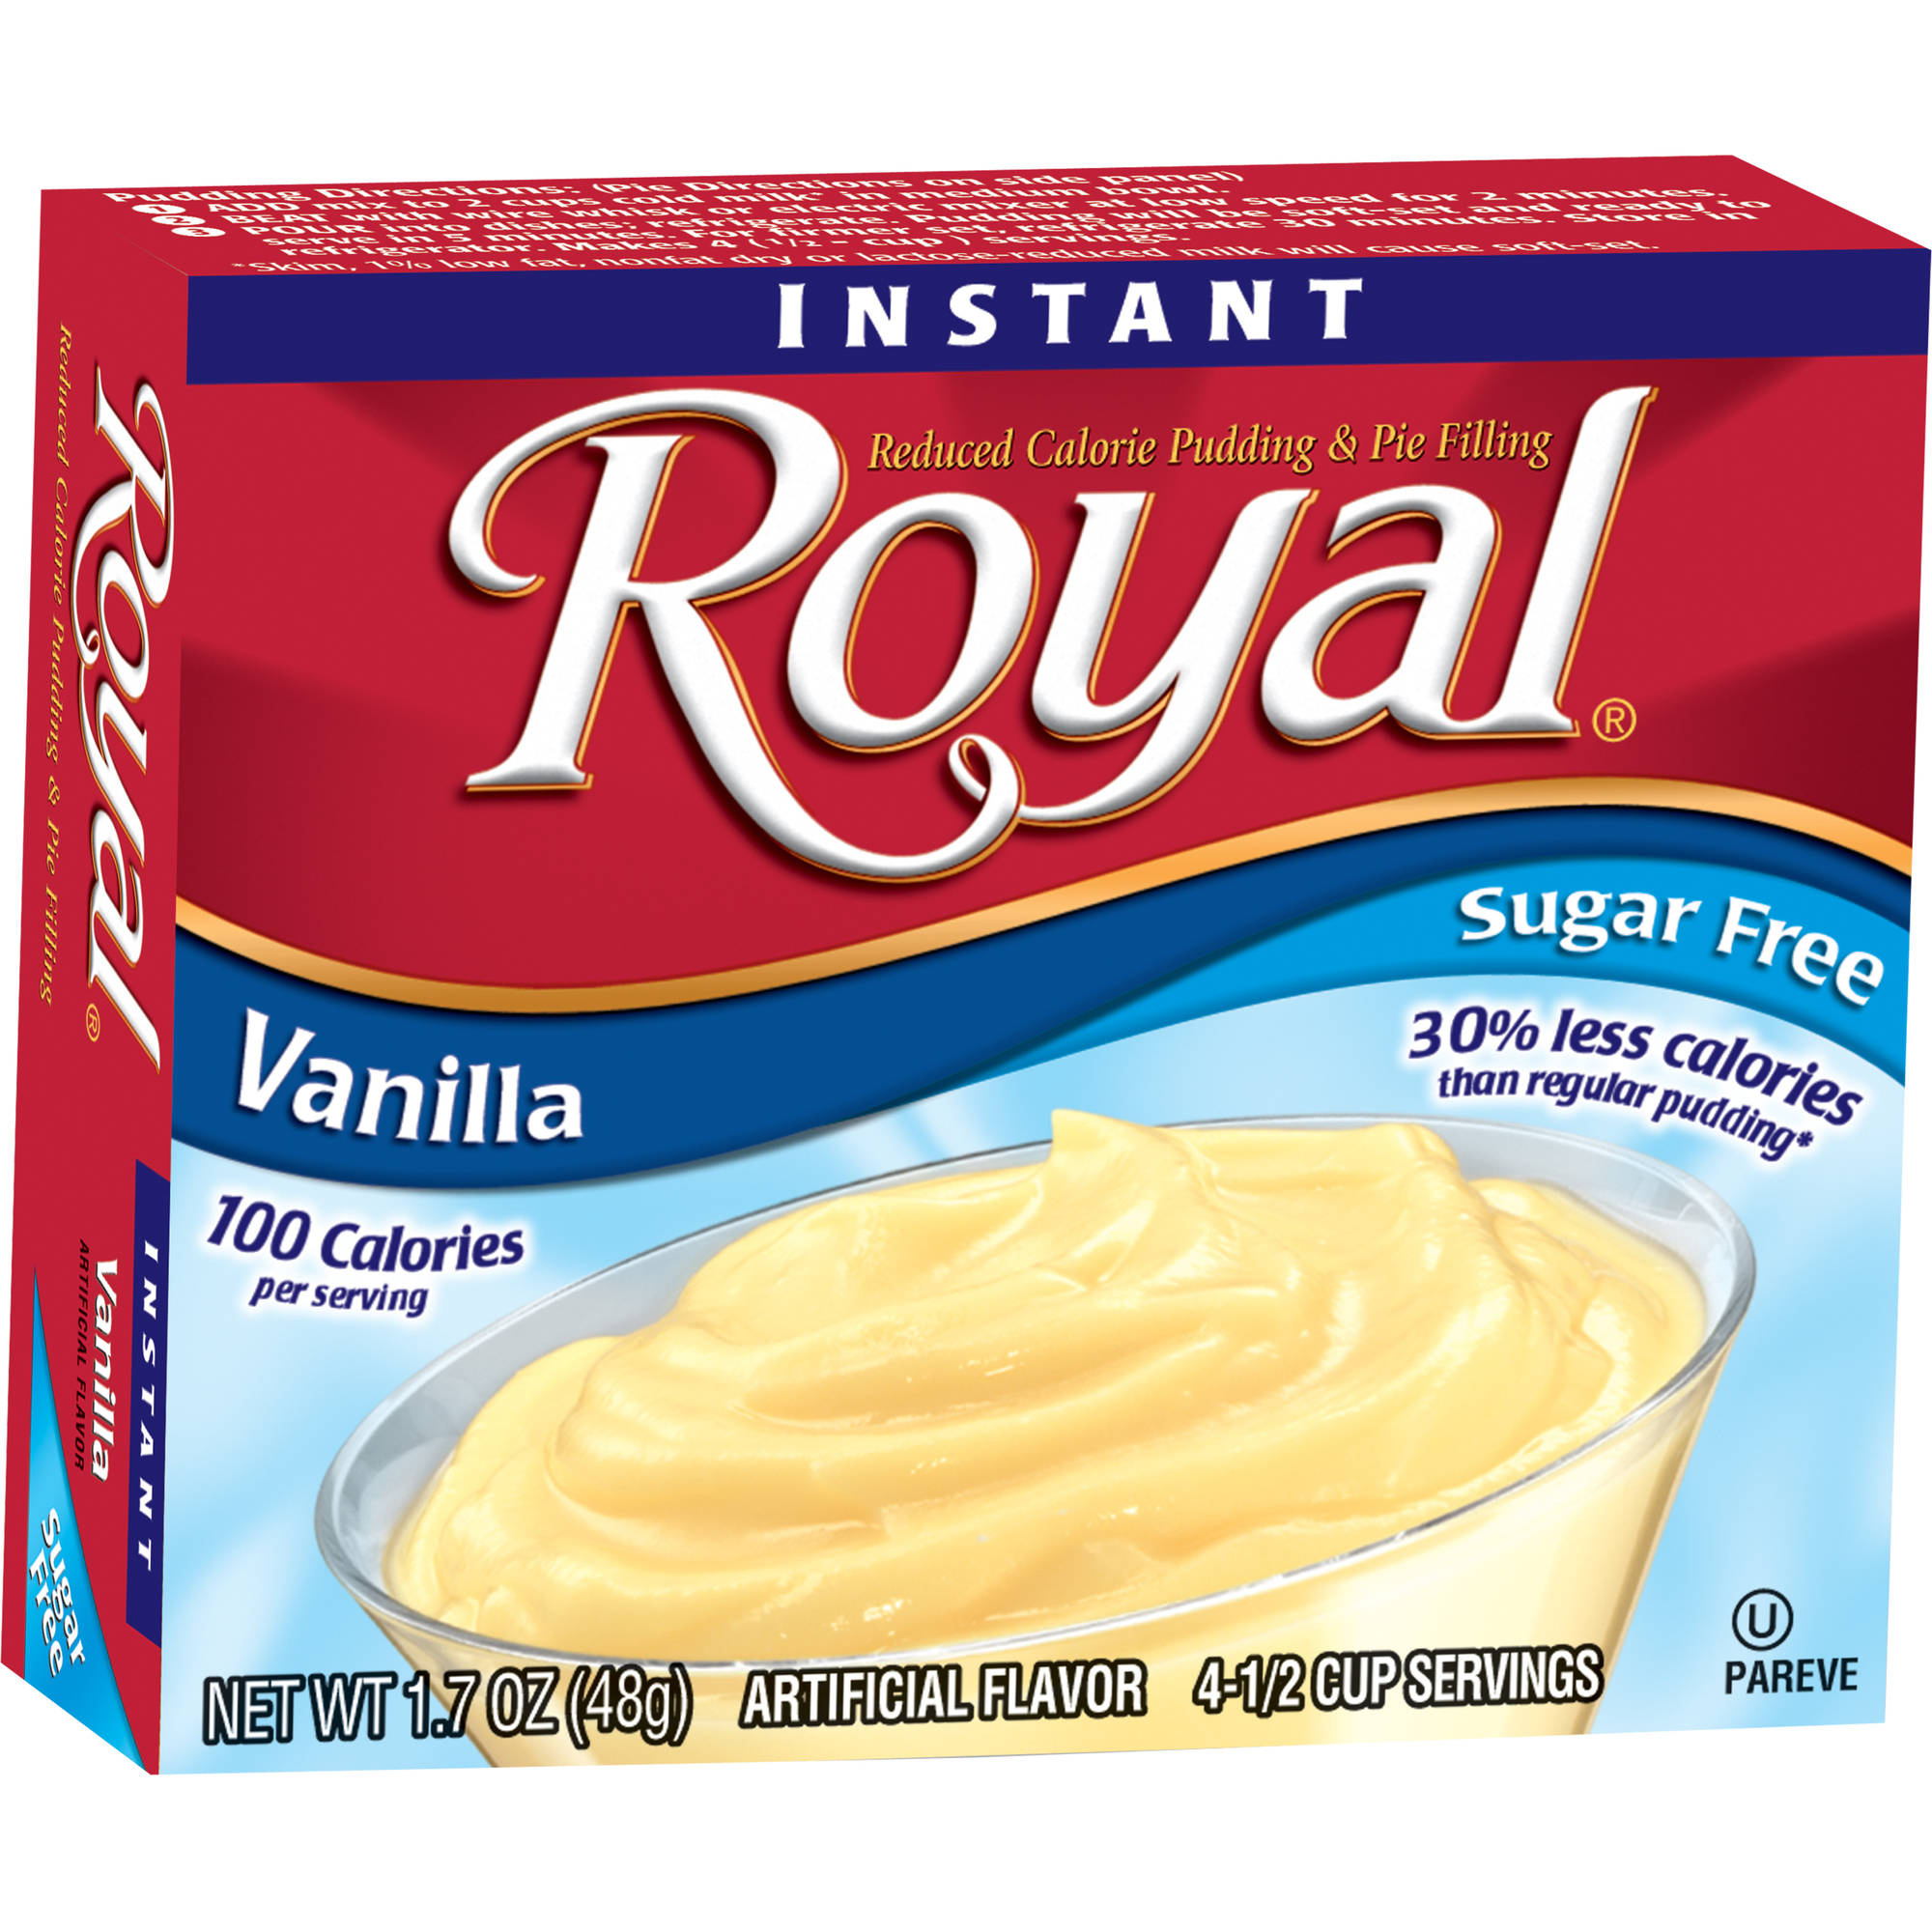 Royal Instant Vanilla Reduced Calorie Pudding & Pie Filling, 1.7 oz, (Pack of 12)